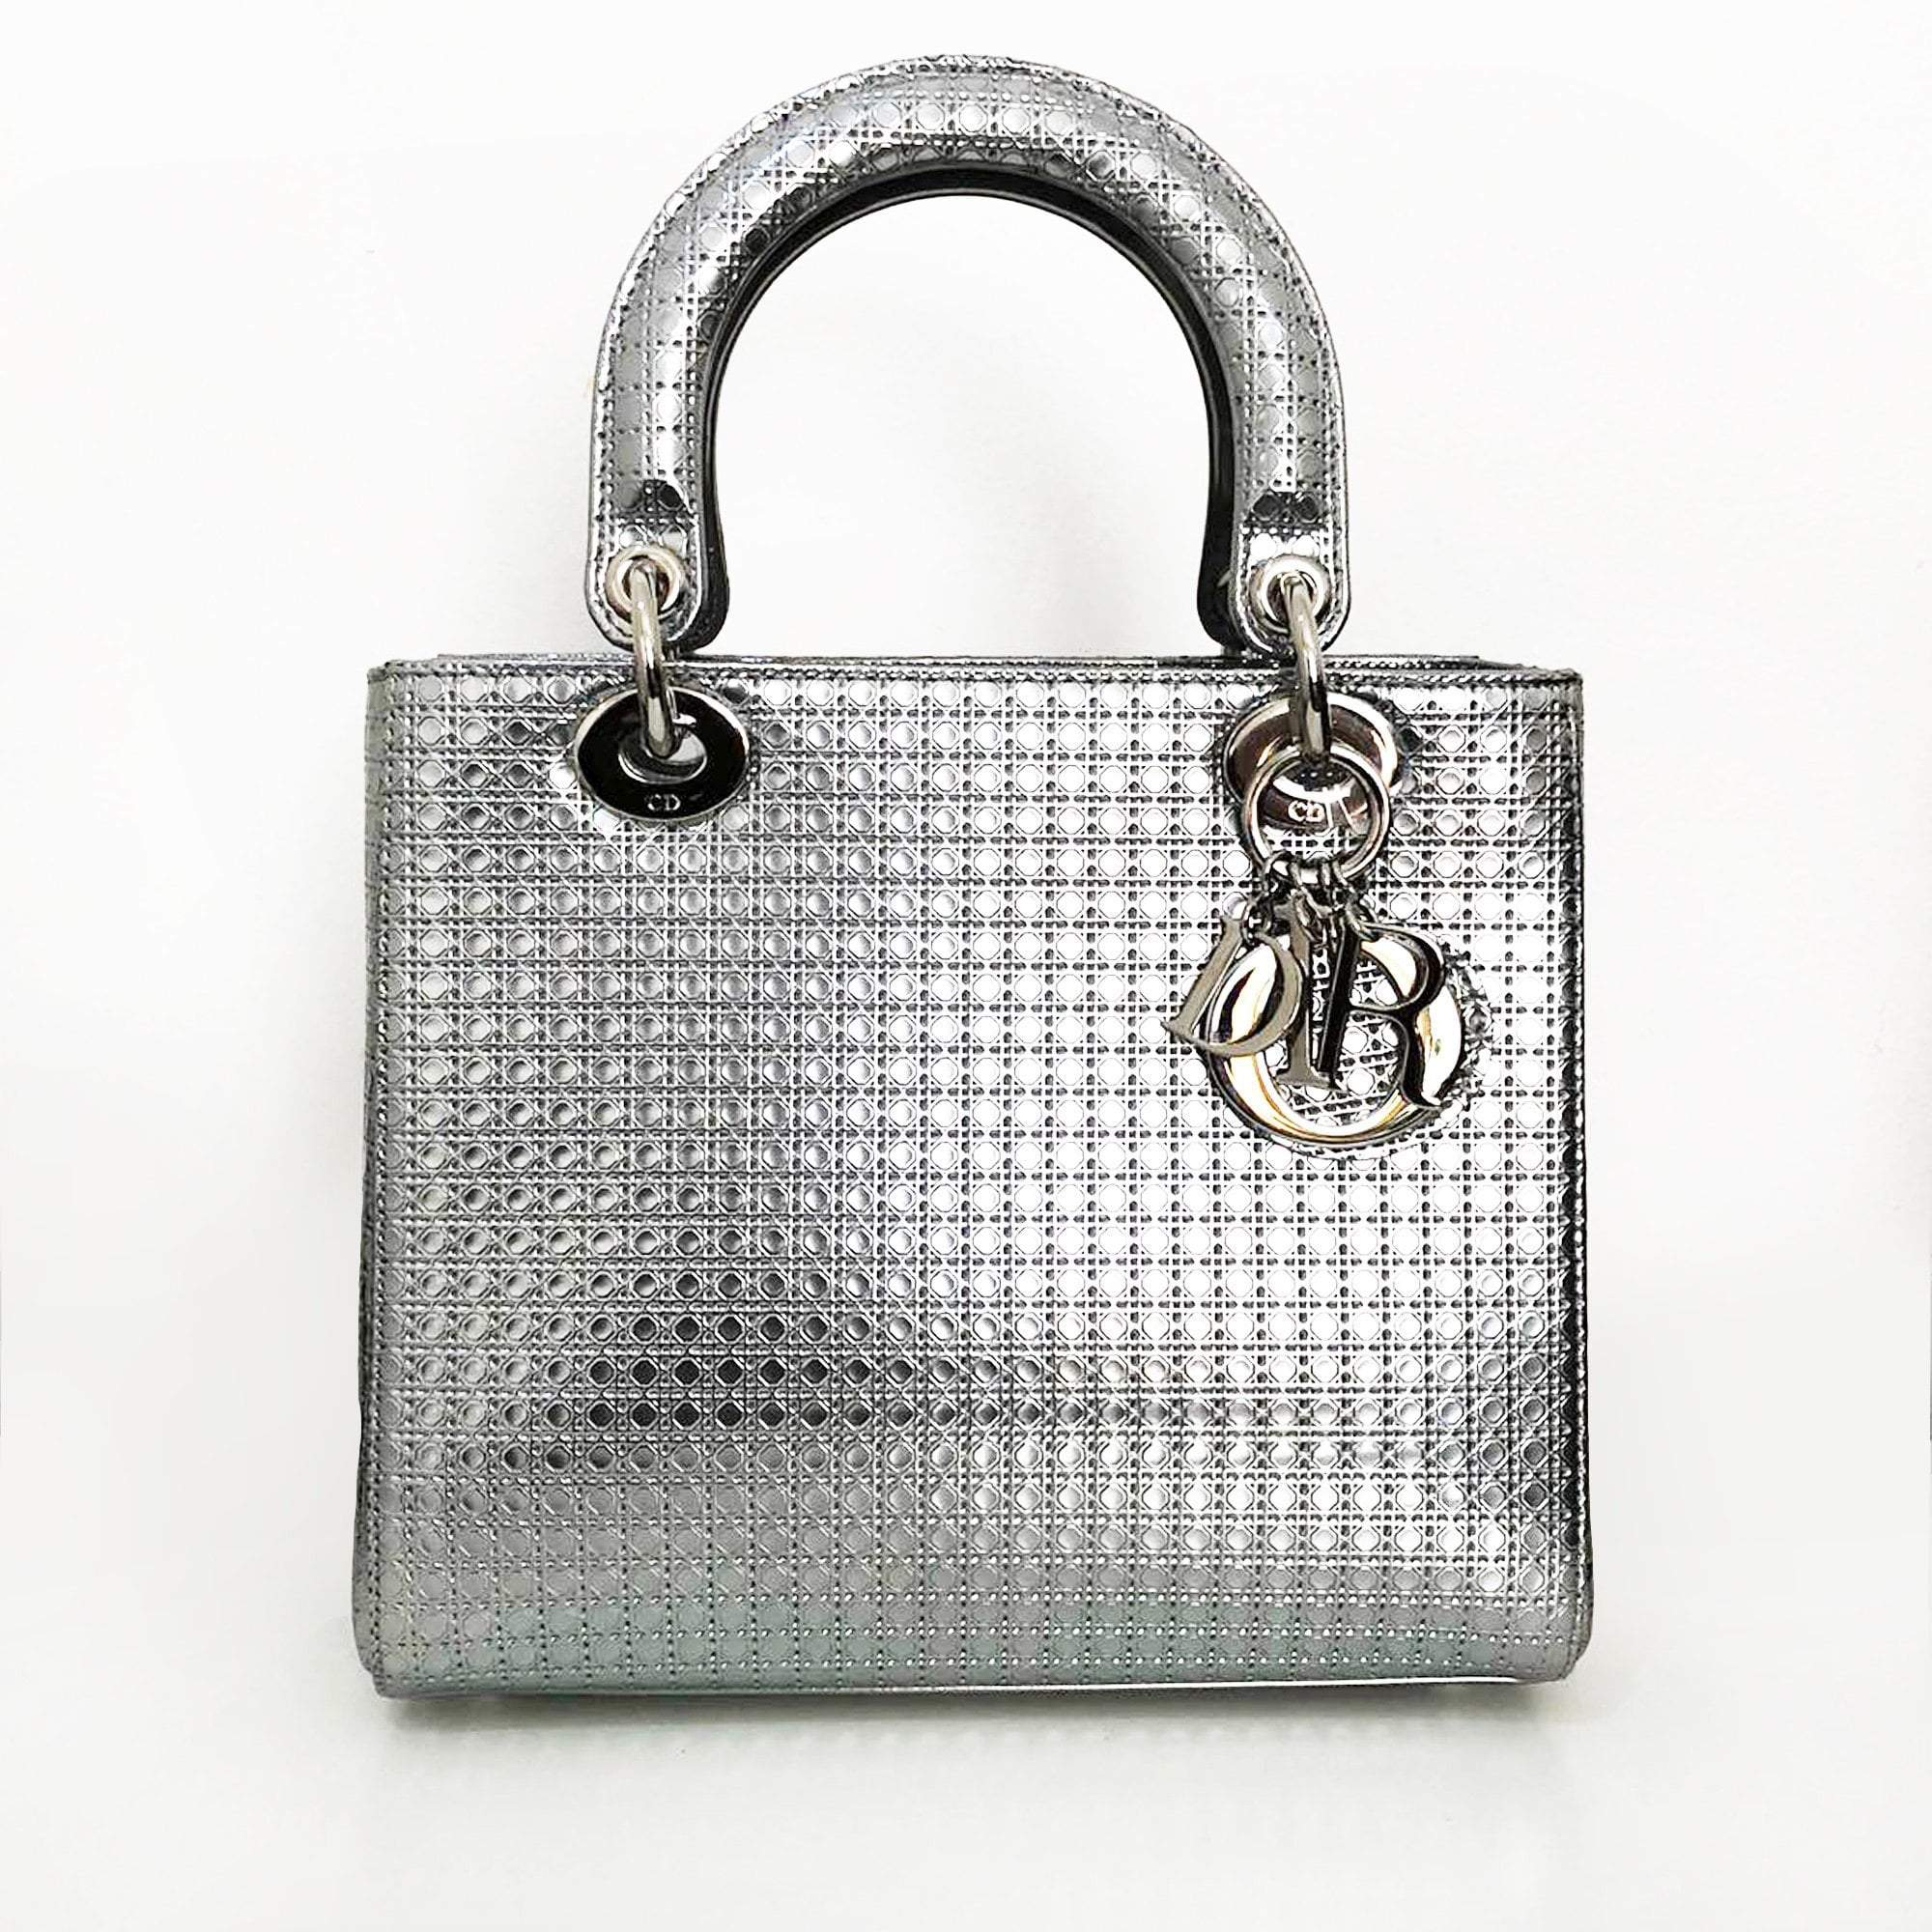 ccb08f7e4562 Christian Dior Silver Micro Cannage Medium Lady Dior Bag – Garderobe